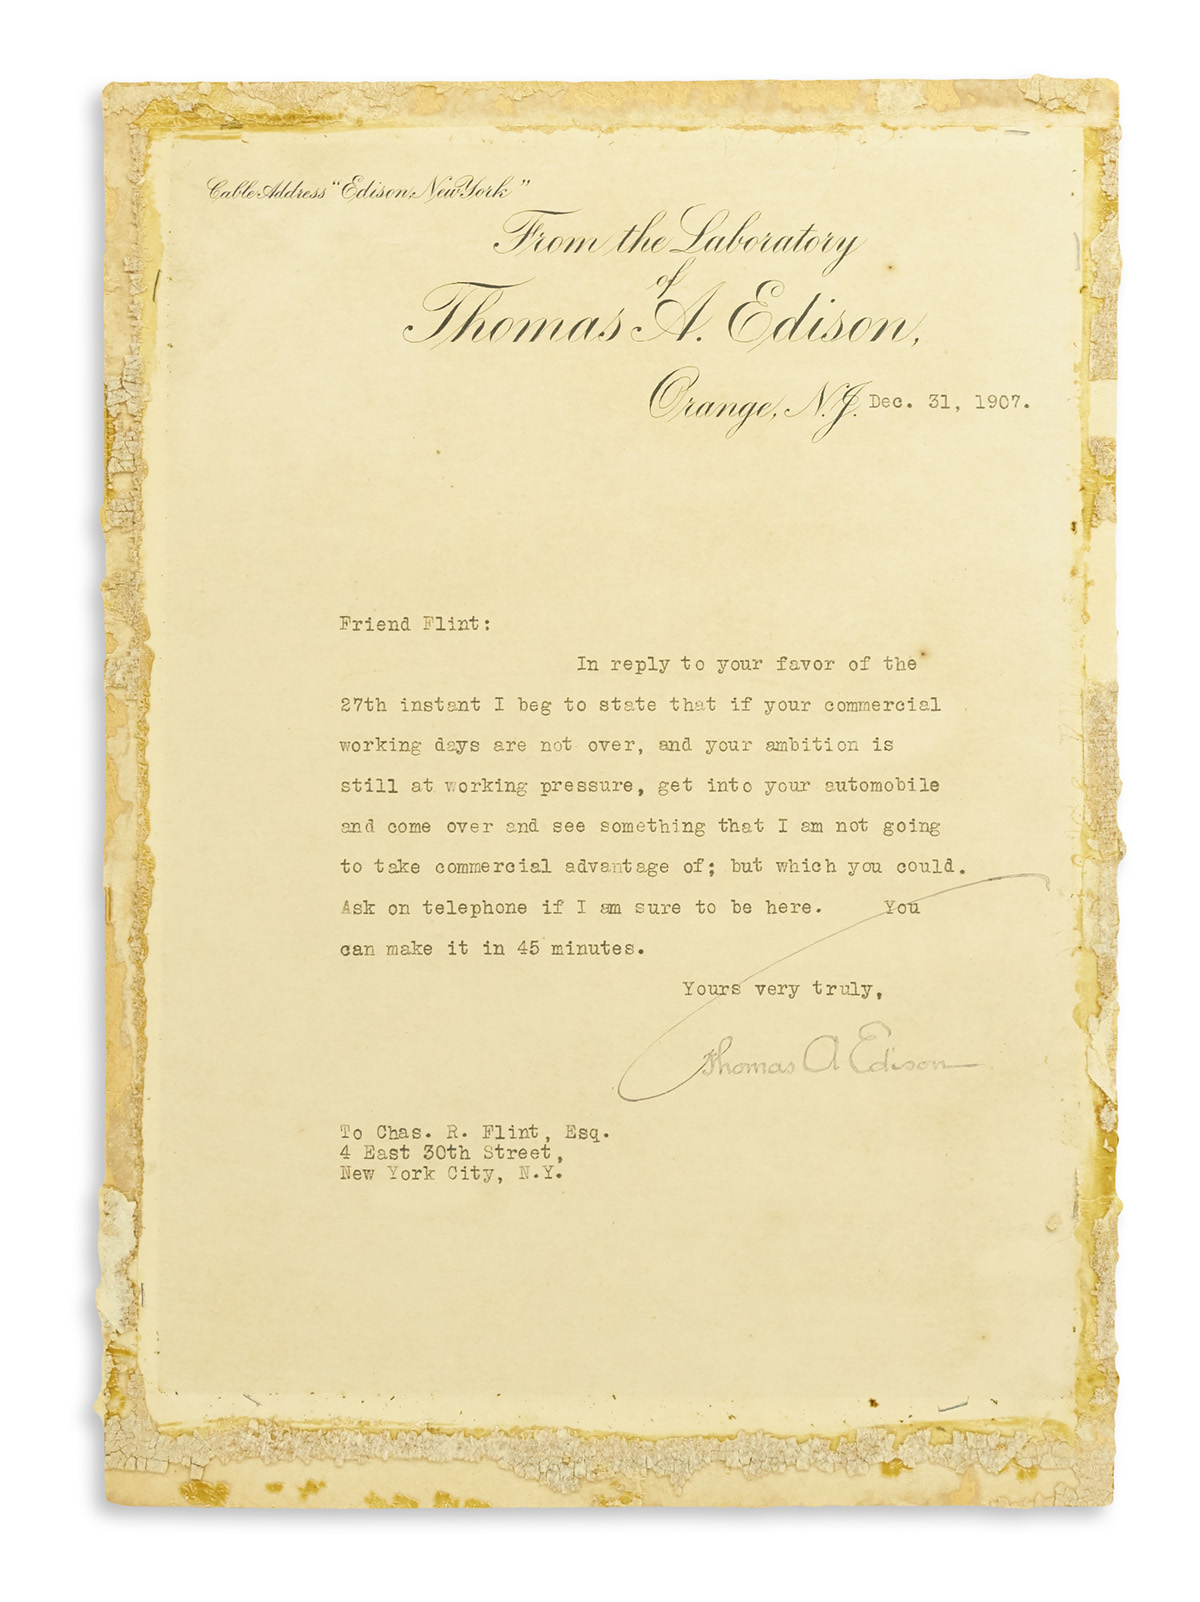 EDISON, THOMAS A. Typed Letter Signed, to IBM founder Charles R. Flint (Friend Flint),